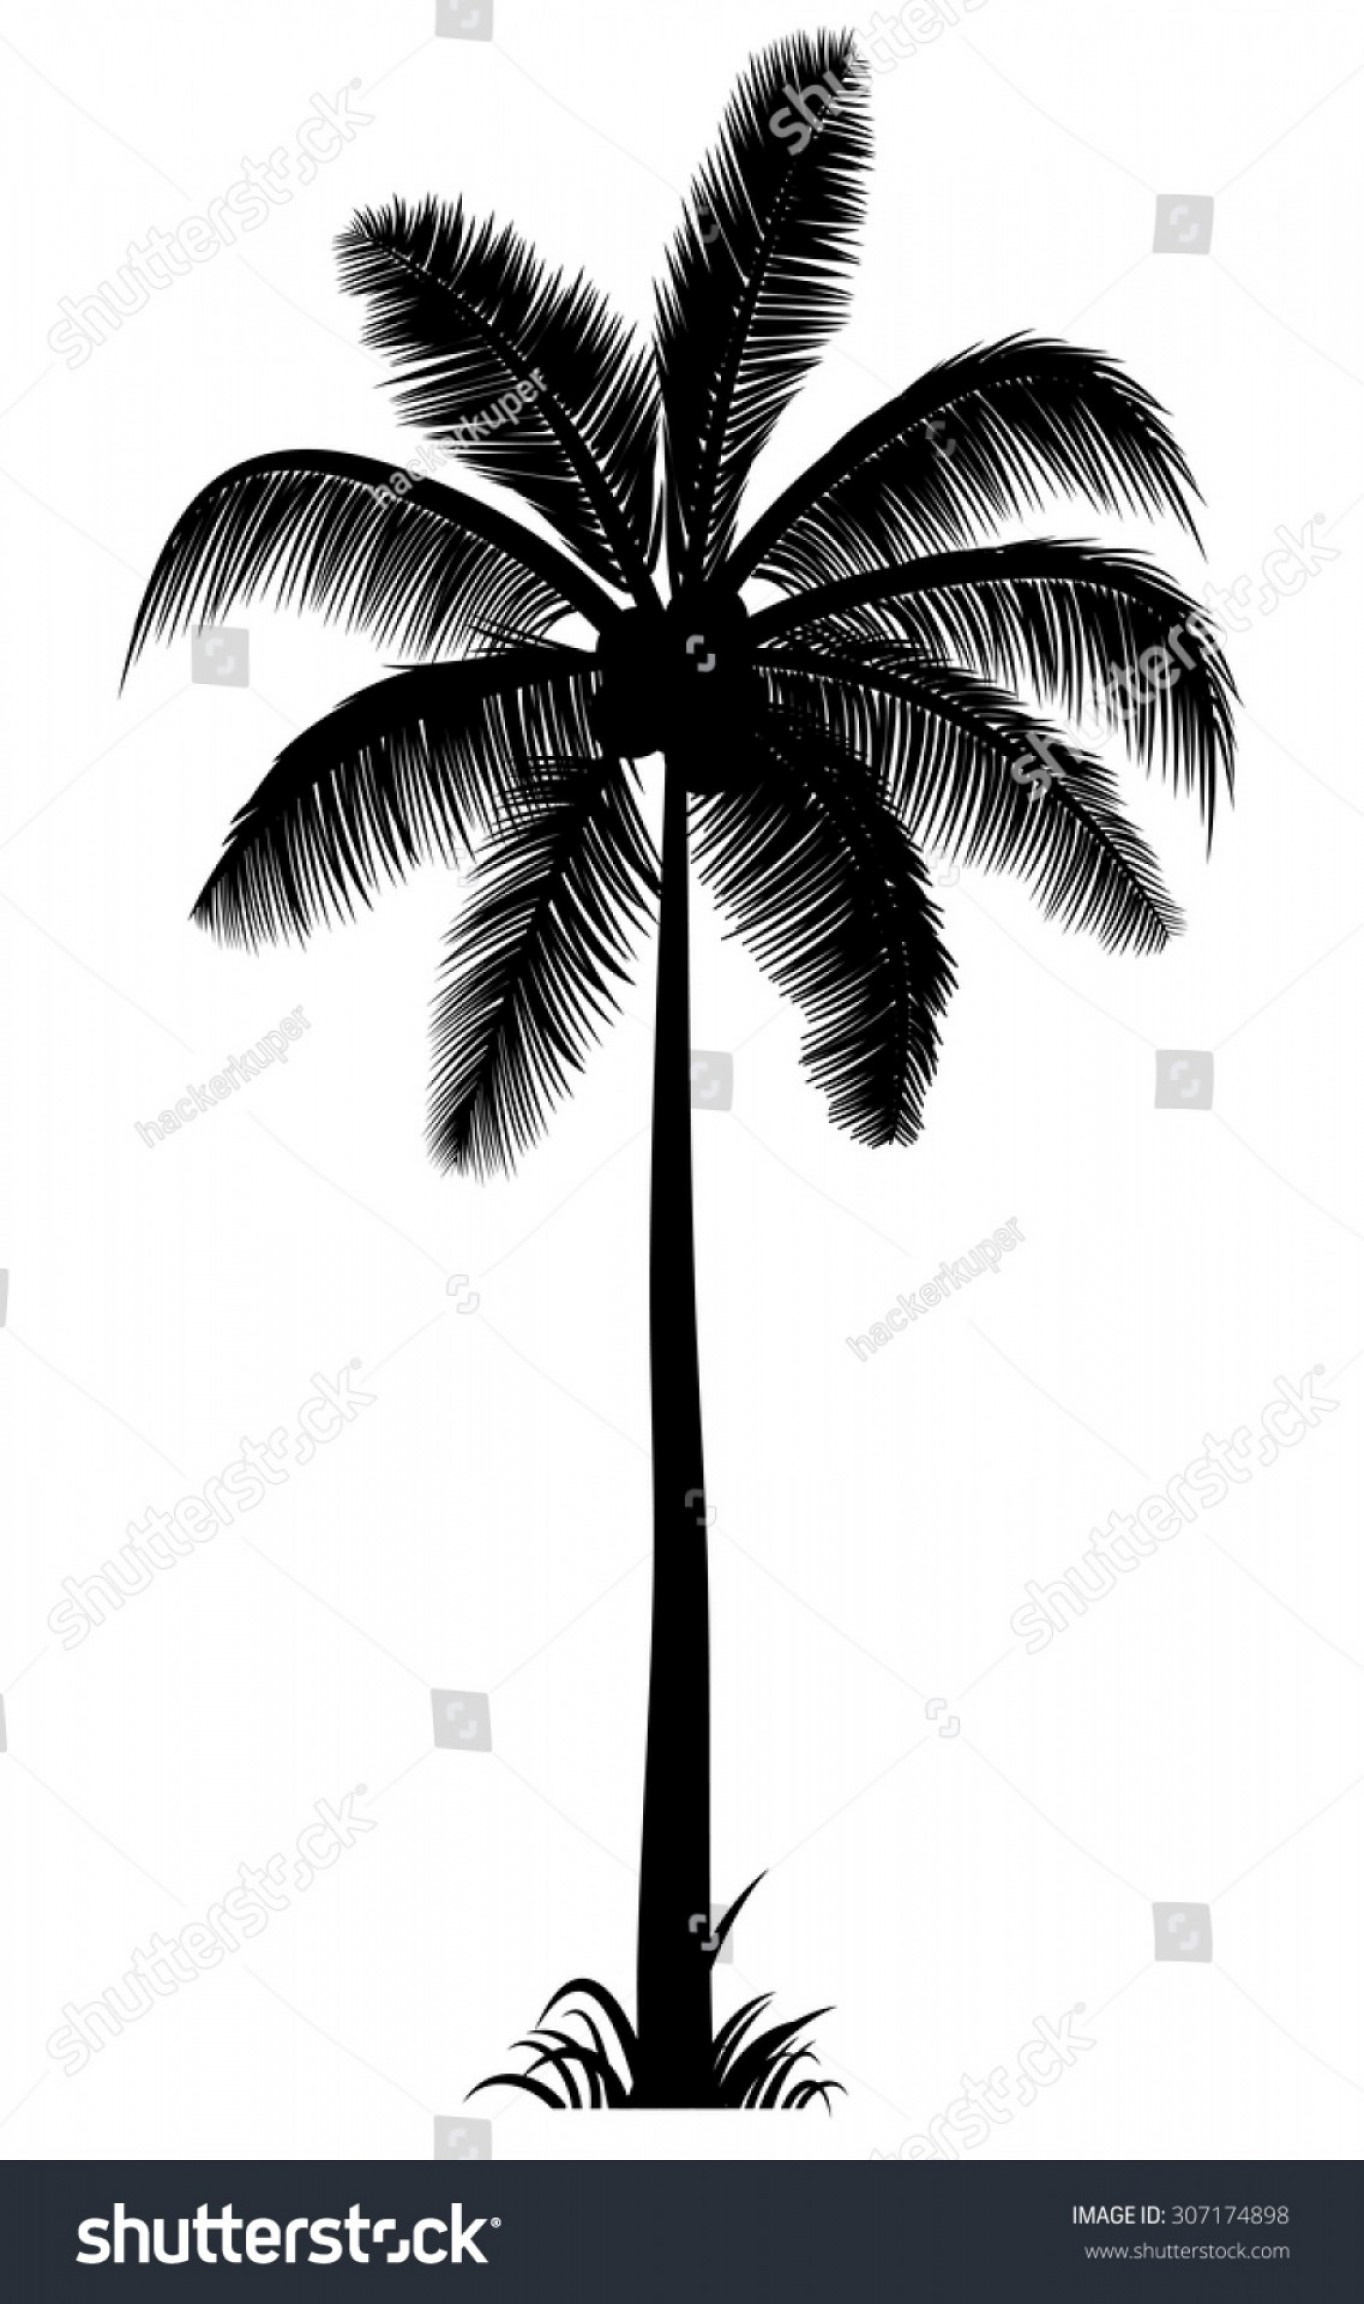 Watercolor Palm Tree Vector: Vector Realistic Palm Tree Silhouette Black